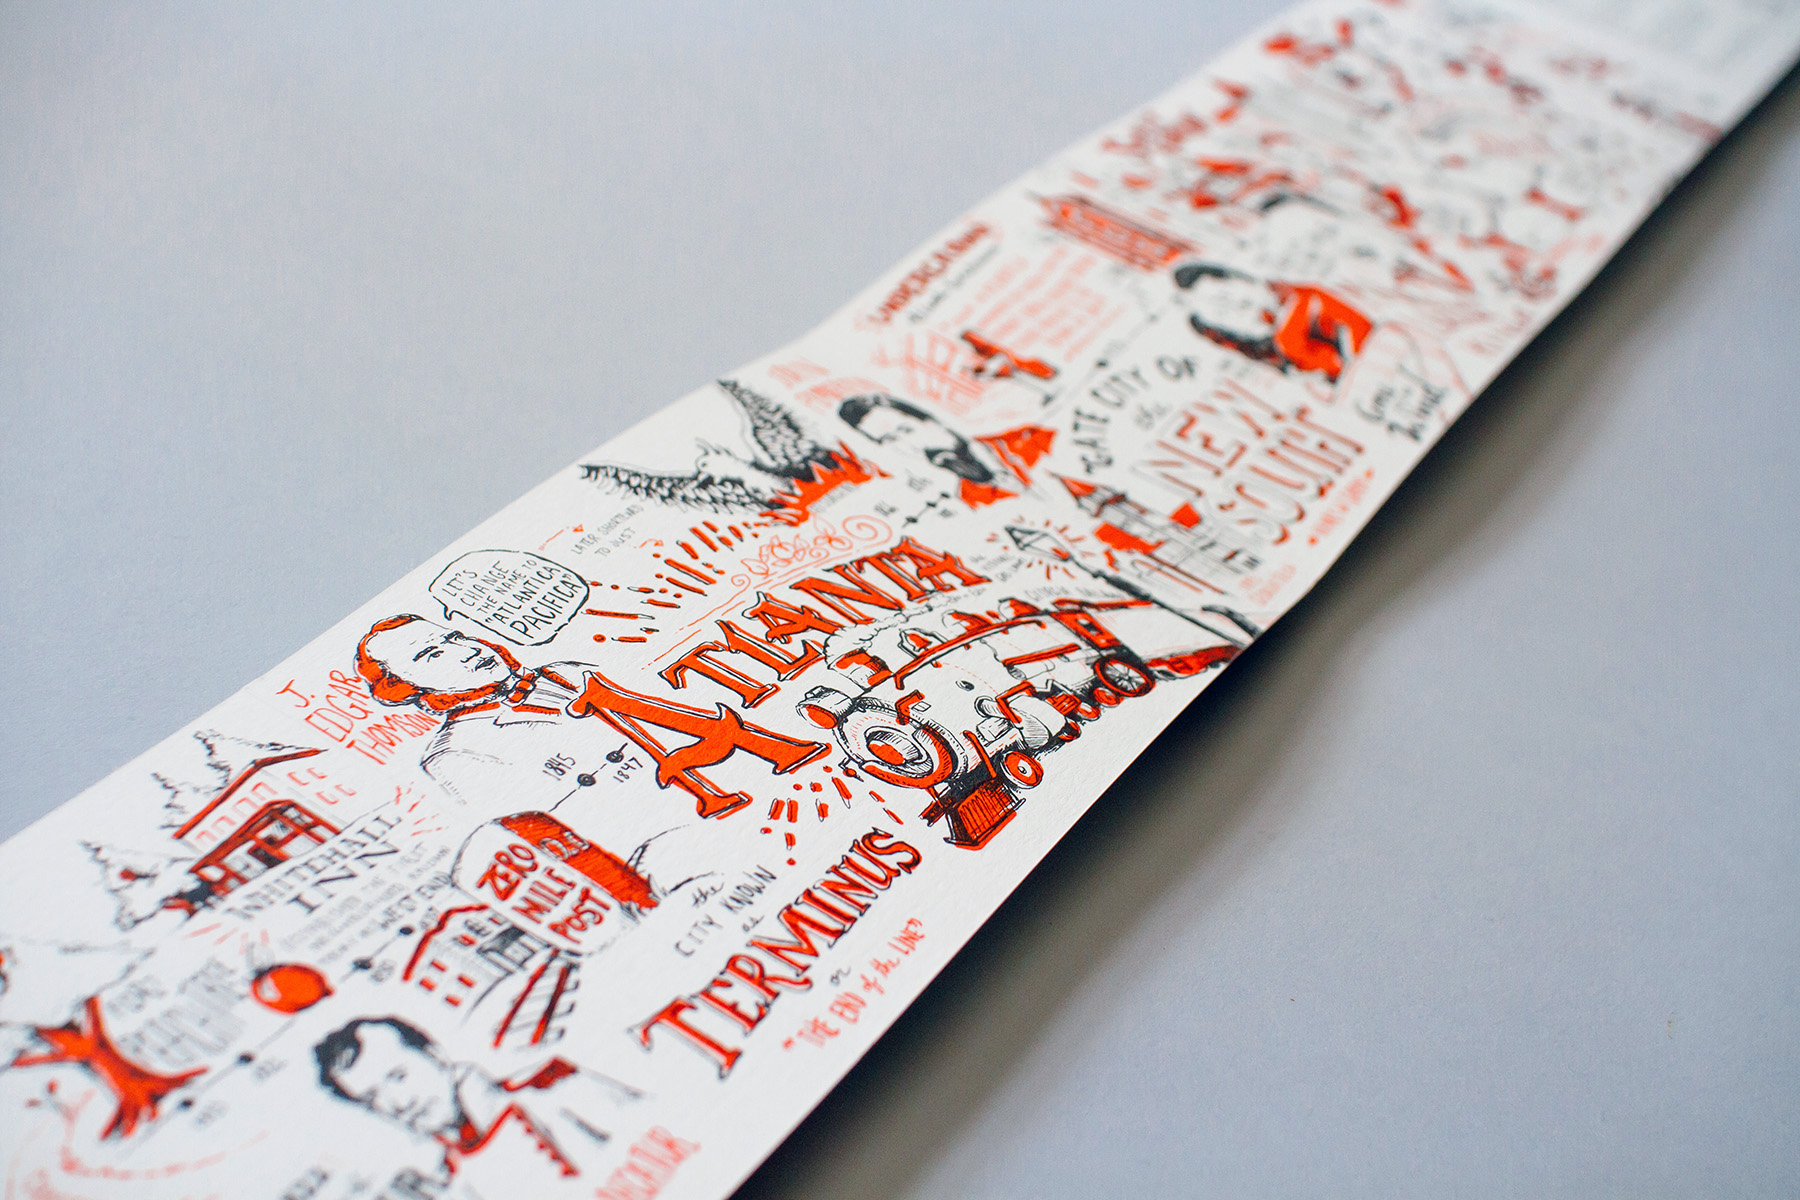 Full detail of the printed Atlanta timeline for Neenah Presents Atlanta How Design Live promotional piece.